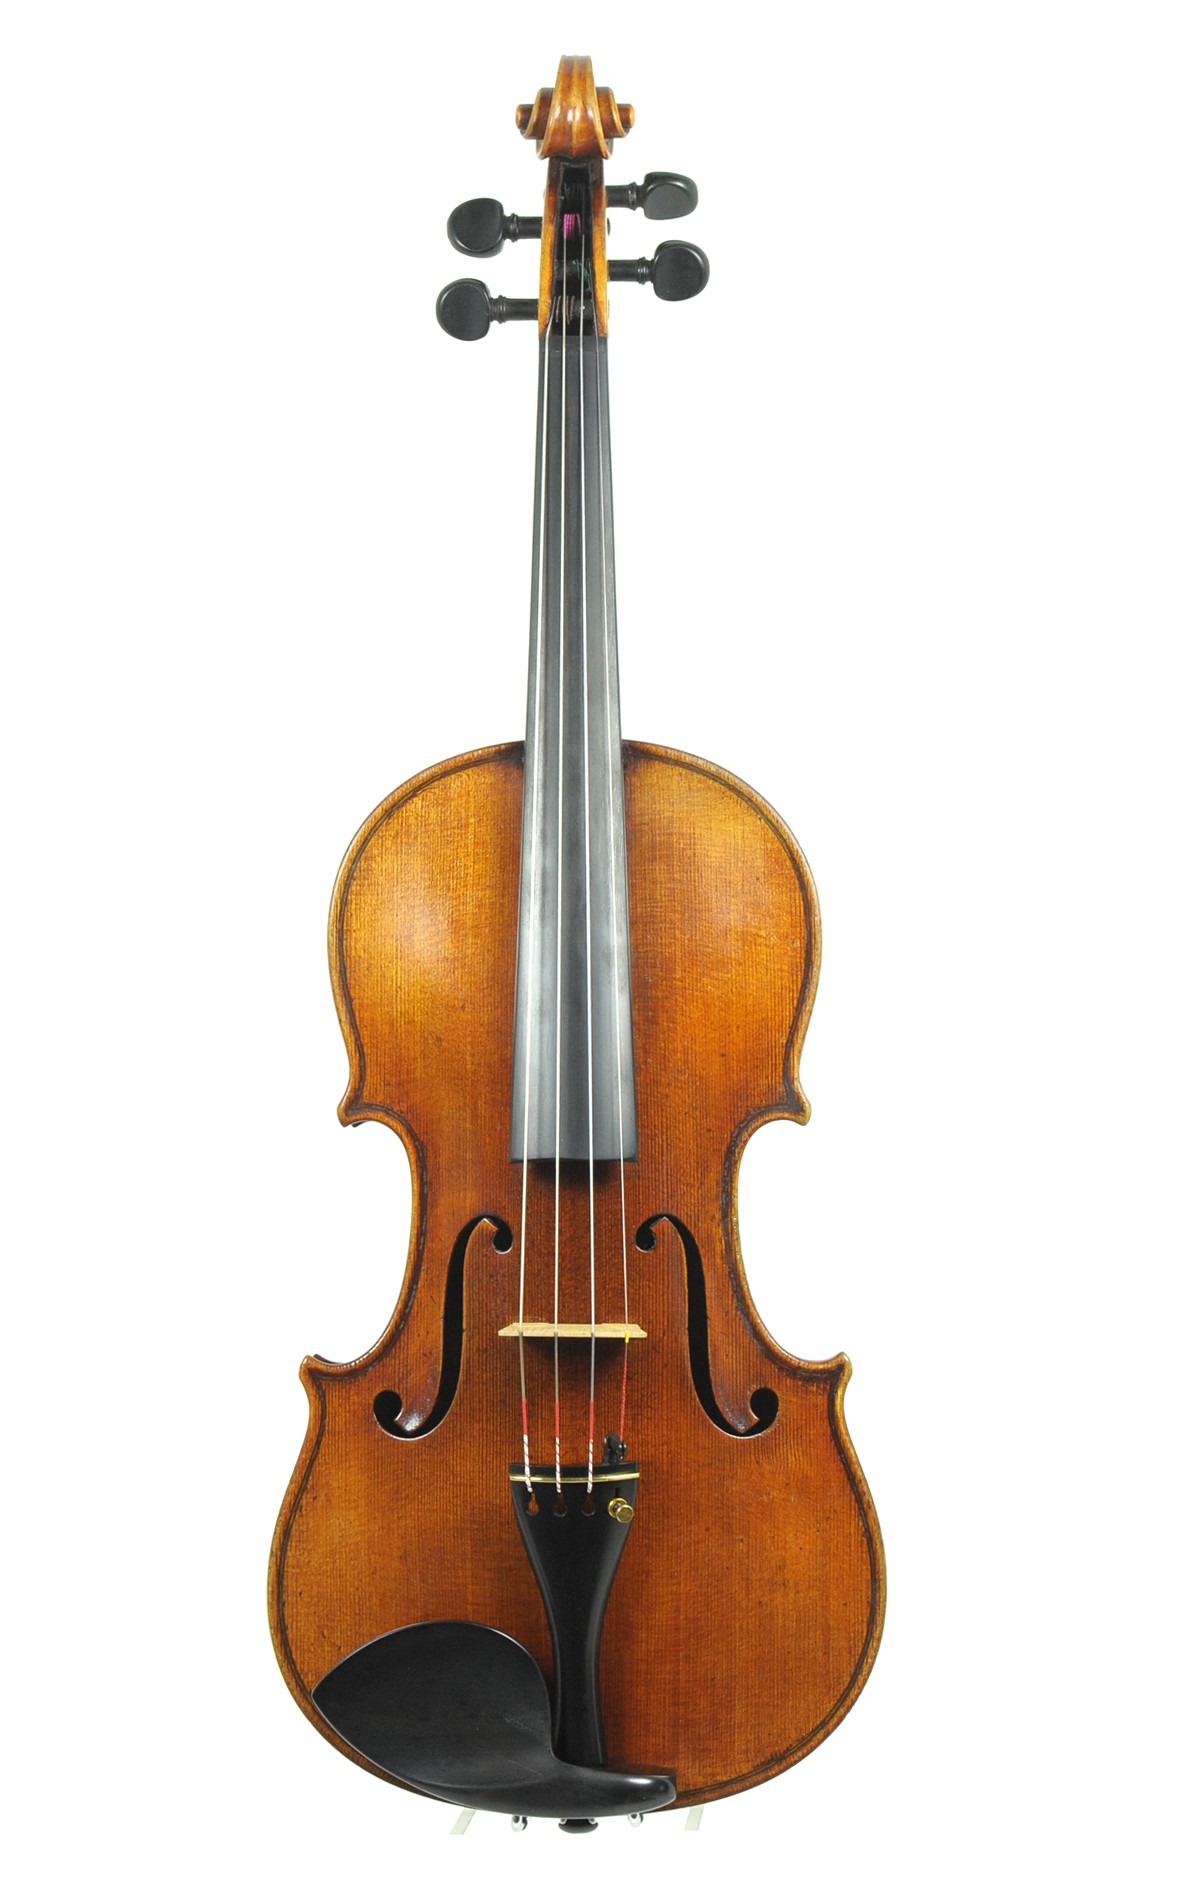 Enrico Robella, violin after J. B. Guadagnini, 1929 - top